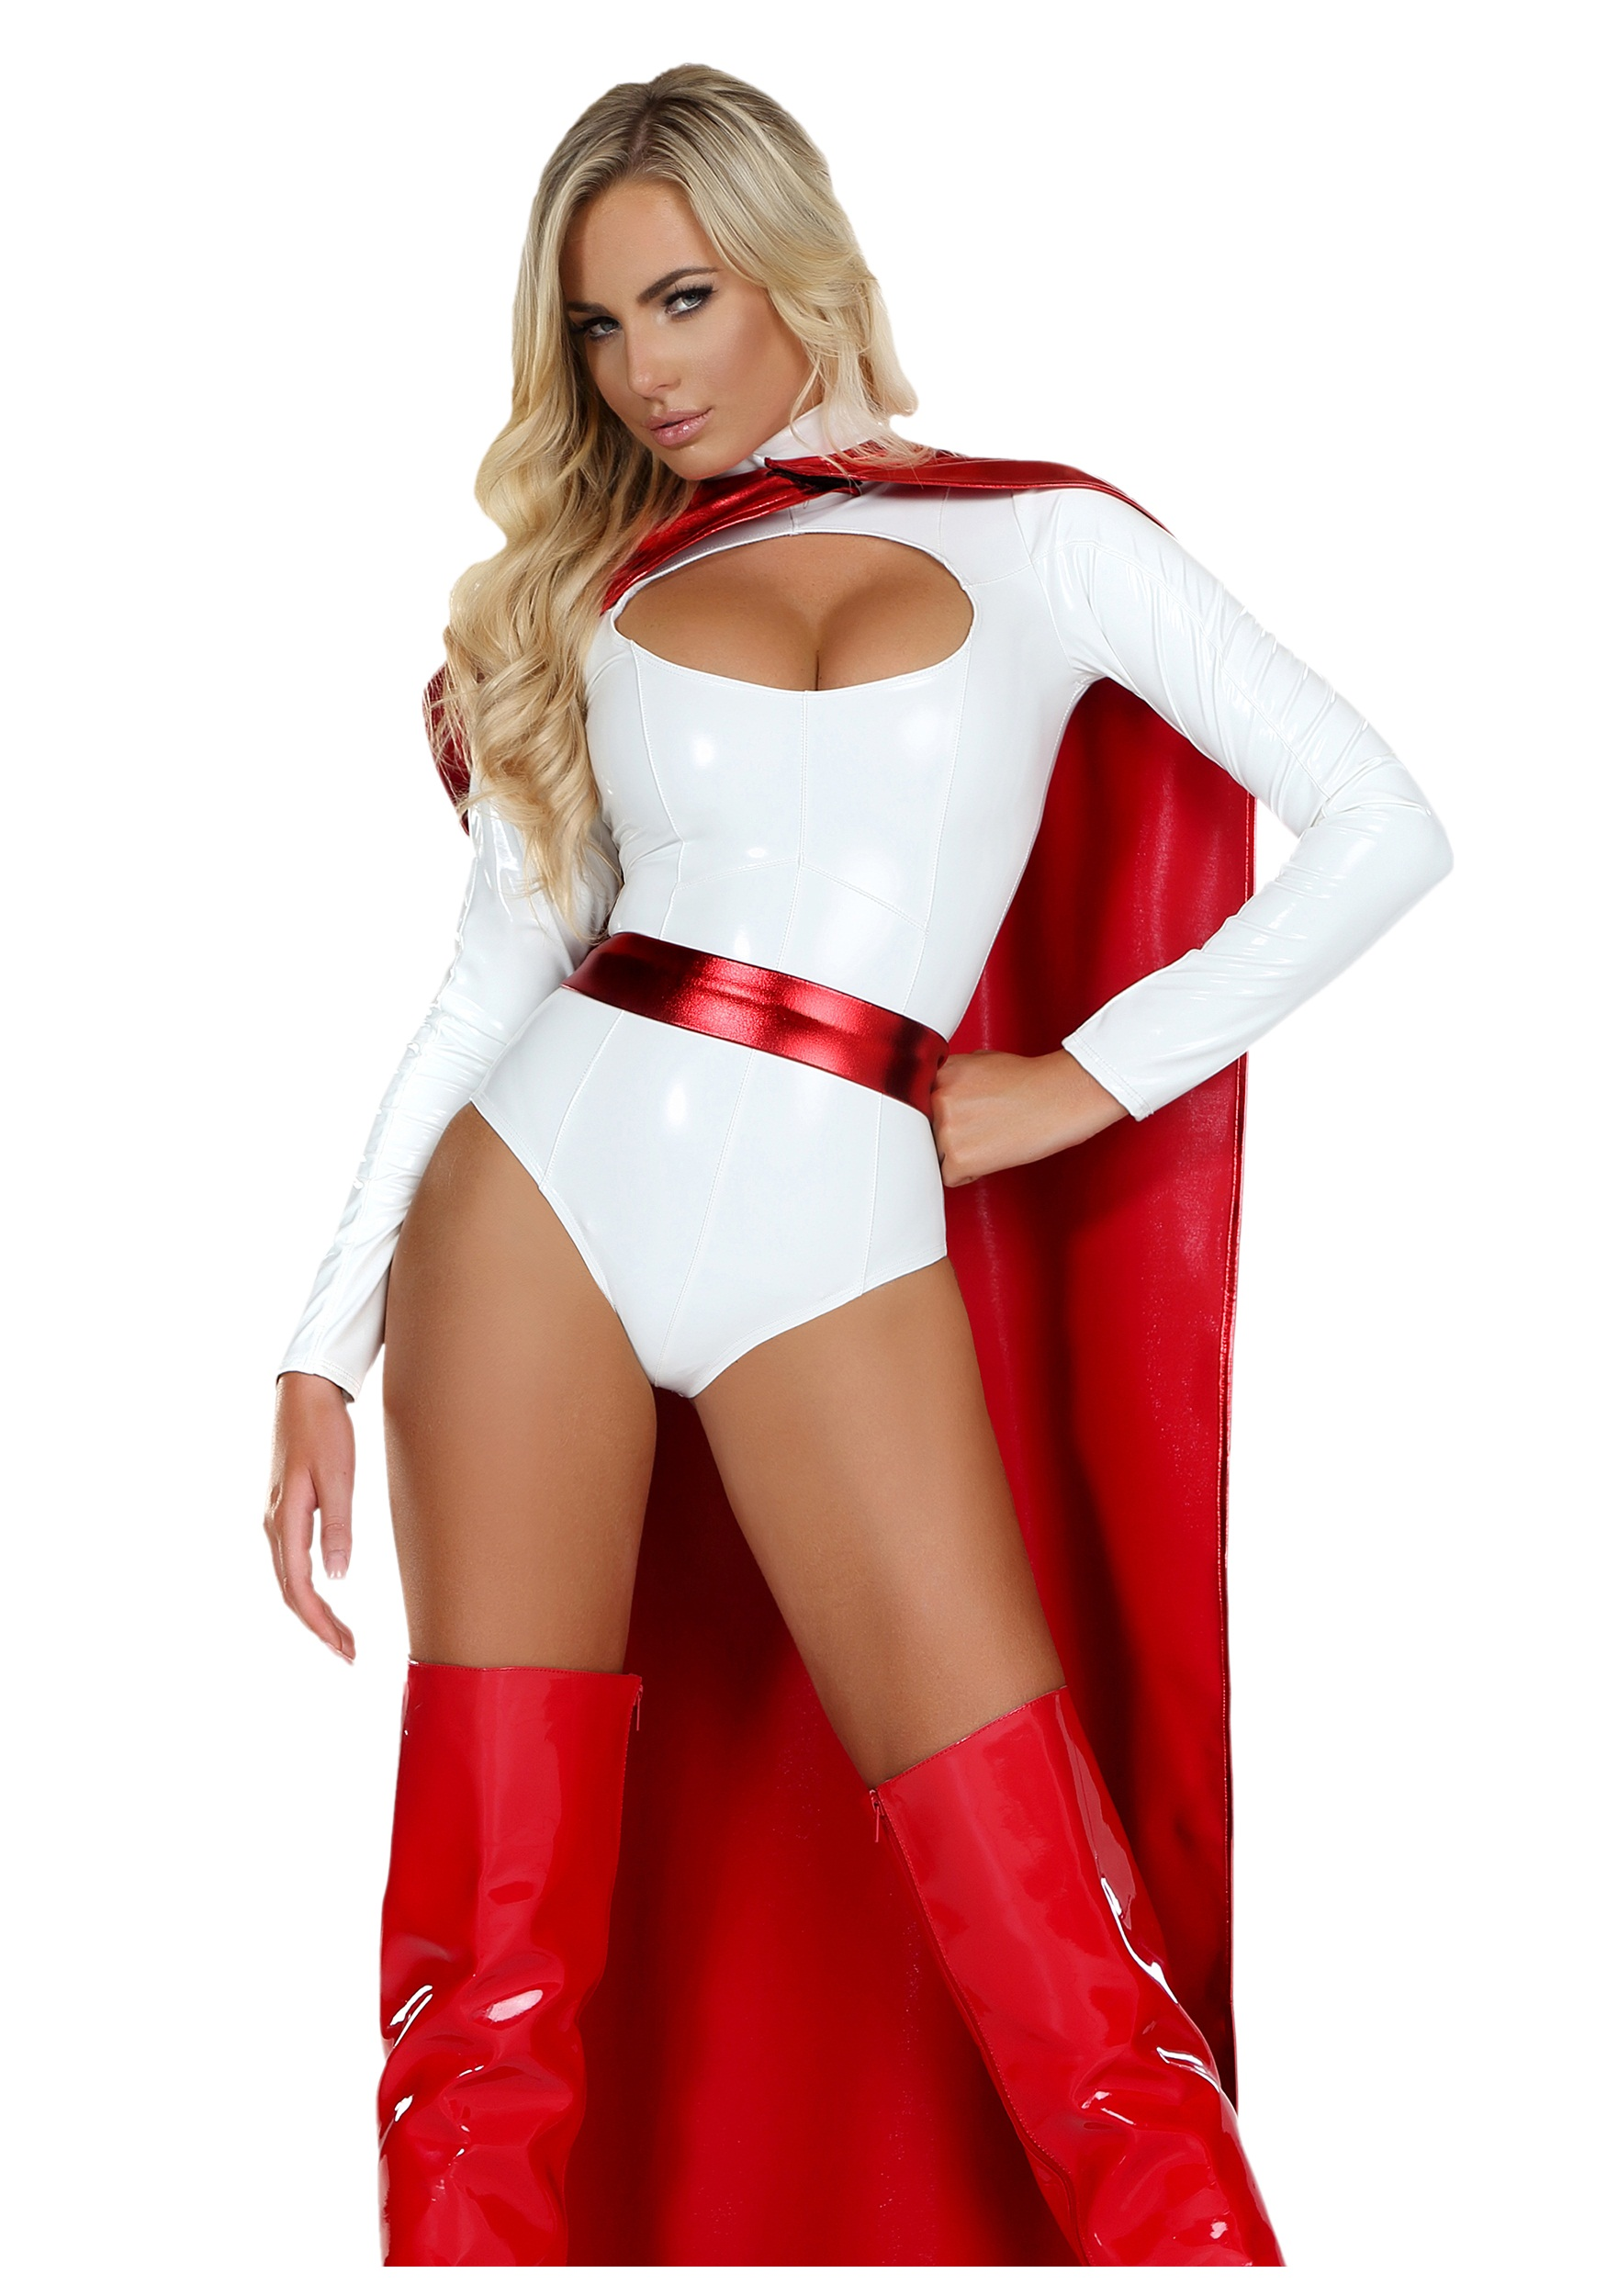 Womens Powerful Superhero Costume  sc 1 st  Halloween Costumes & Womens Powerful Superhero Costume - Halloween Costumes